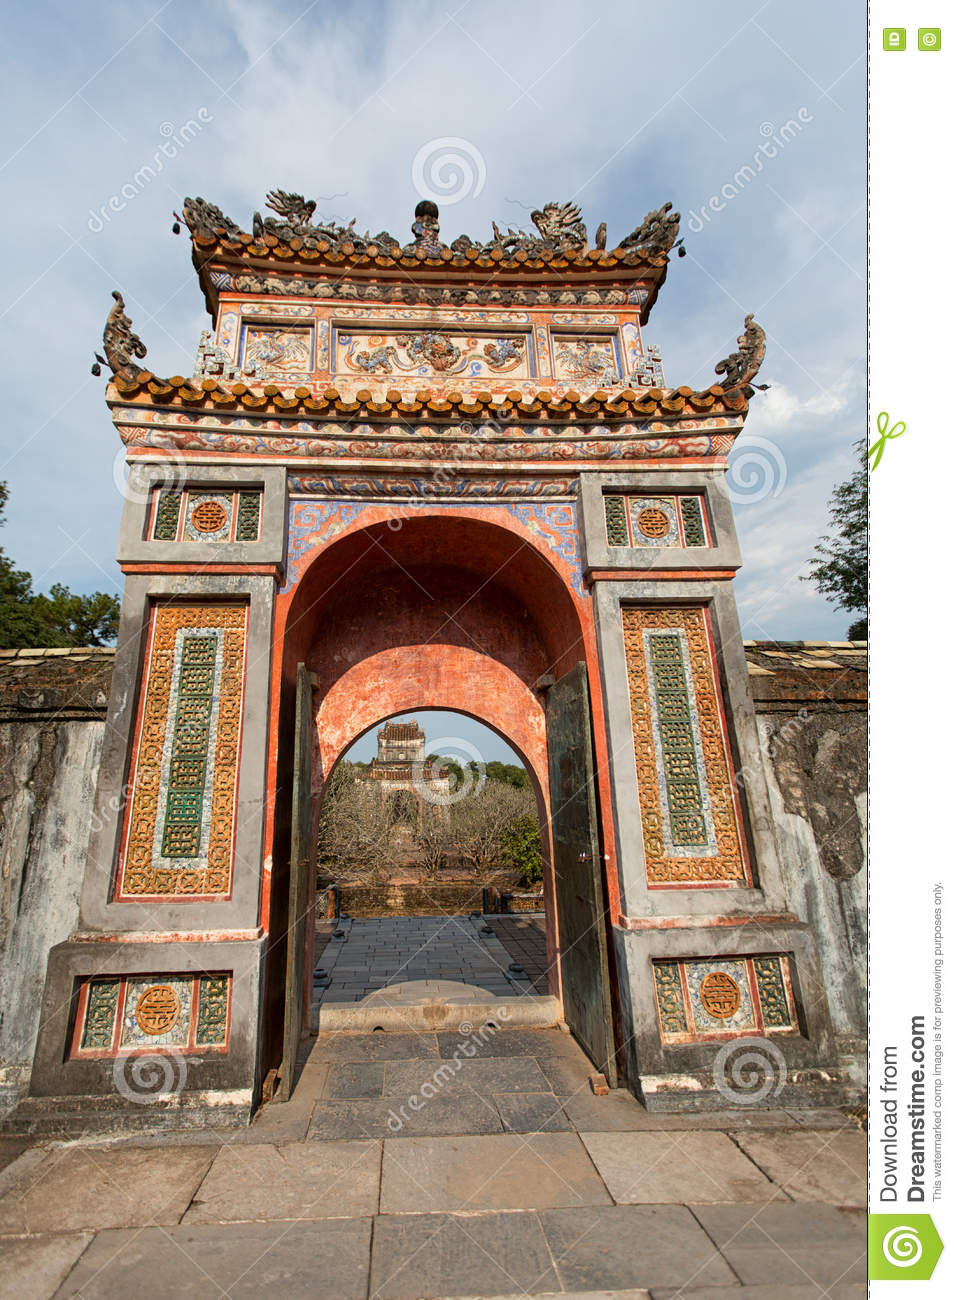 HUE, VIETNAM - MARCH 27, 2015: Structures of Hue Citadel Complex.Complex of Hue Monuments lies along the Perfume River in Hue City